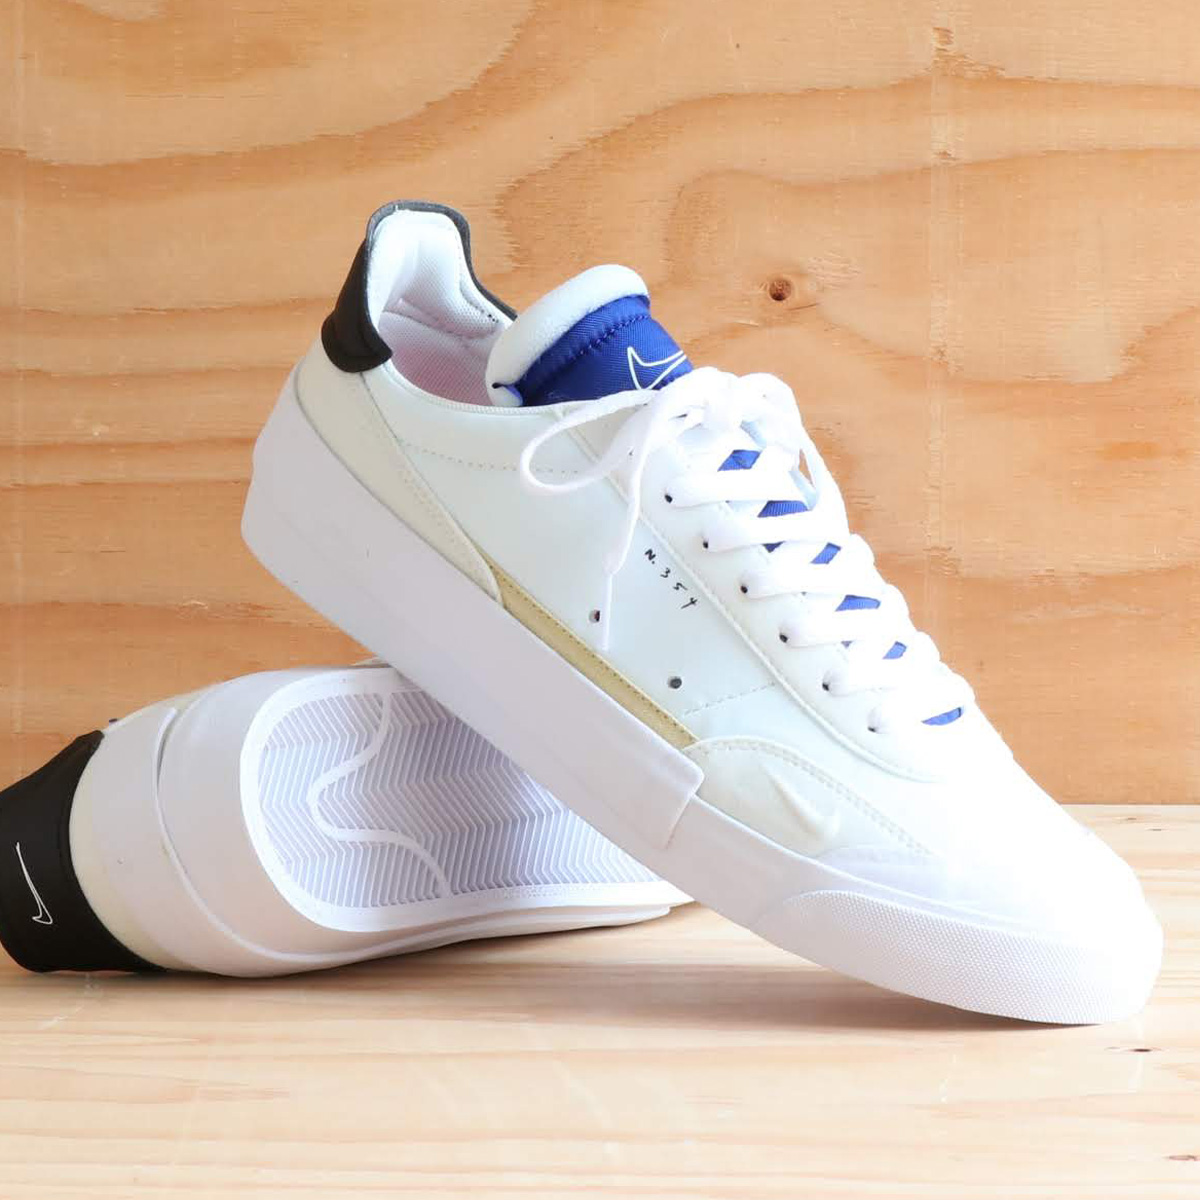 NIKE DROP-TYPE(ナイキ ドロップ タイプ)SUMMIT WHITE/BLACK-WHITE-DEEP ROYAL BLUE【メンズ スニーカー】19FA-S